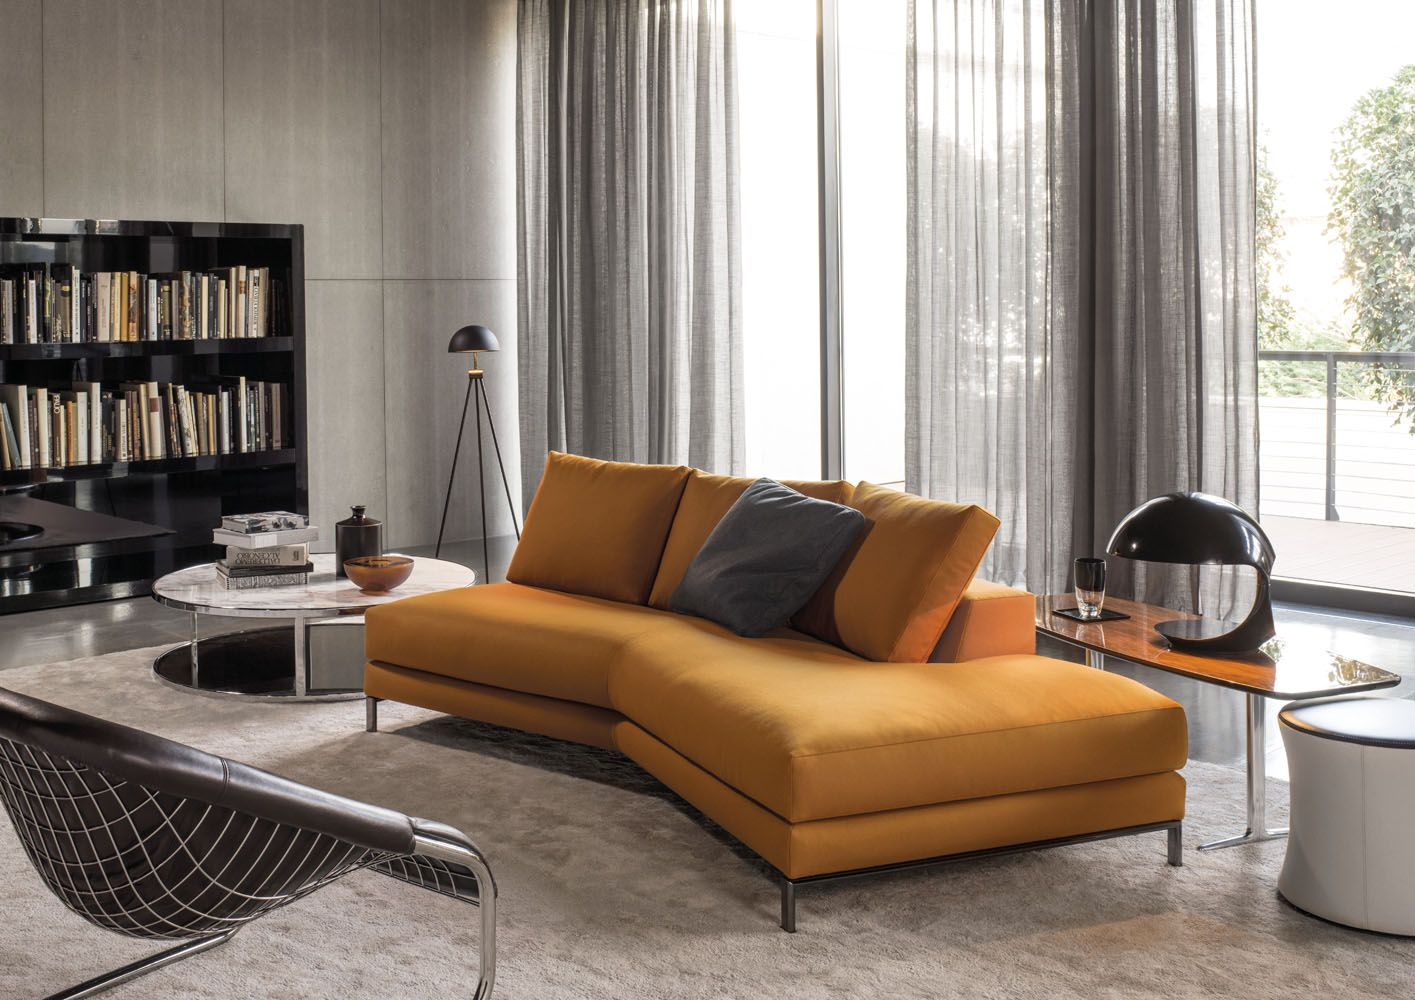 Smink incorporated products sofas minotti hamilton islands